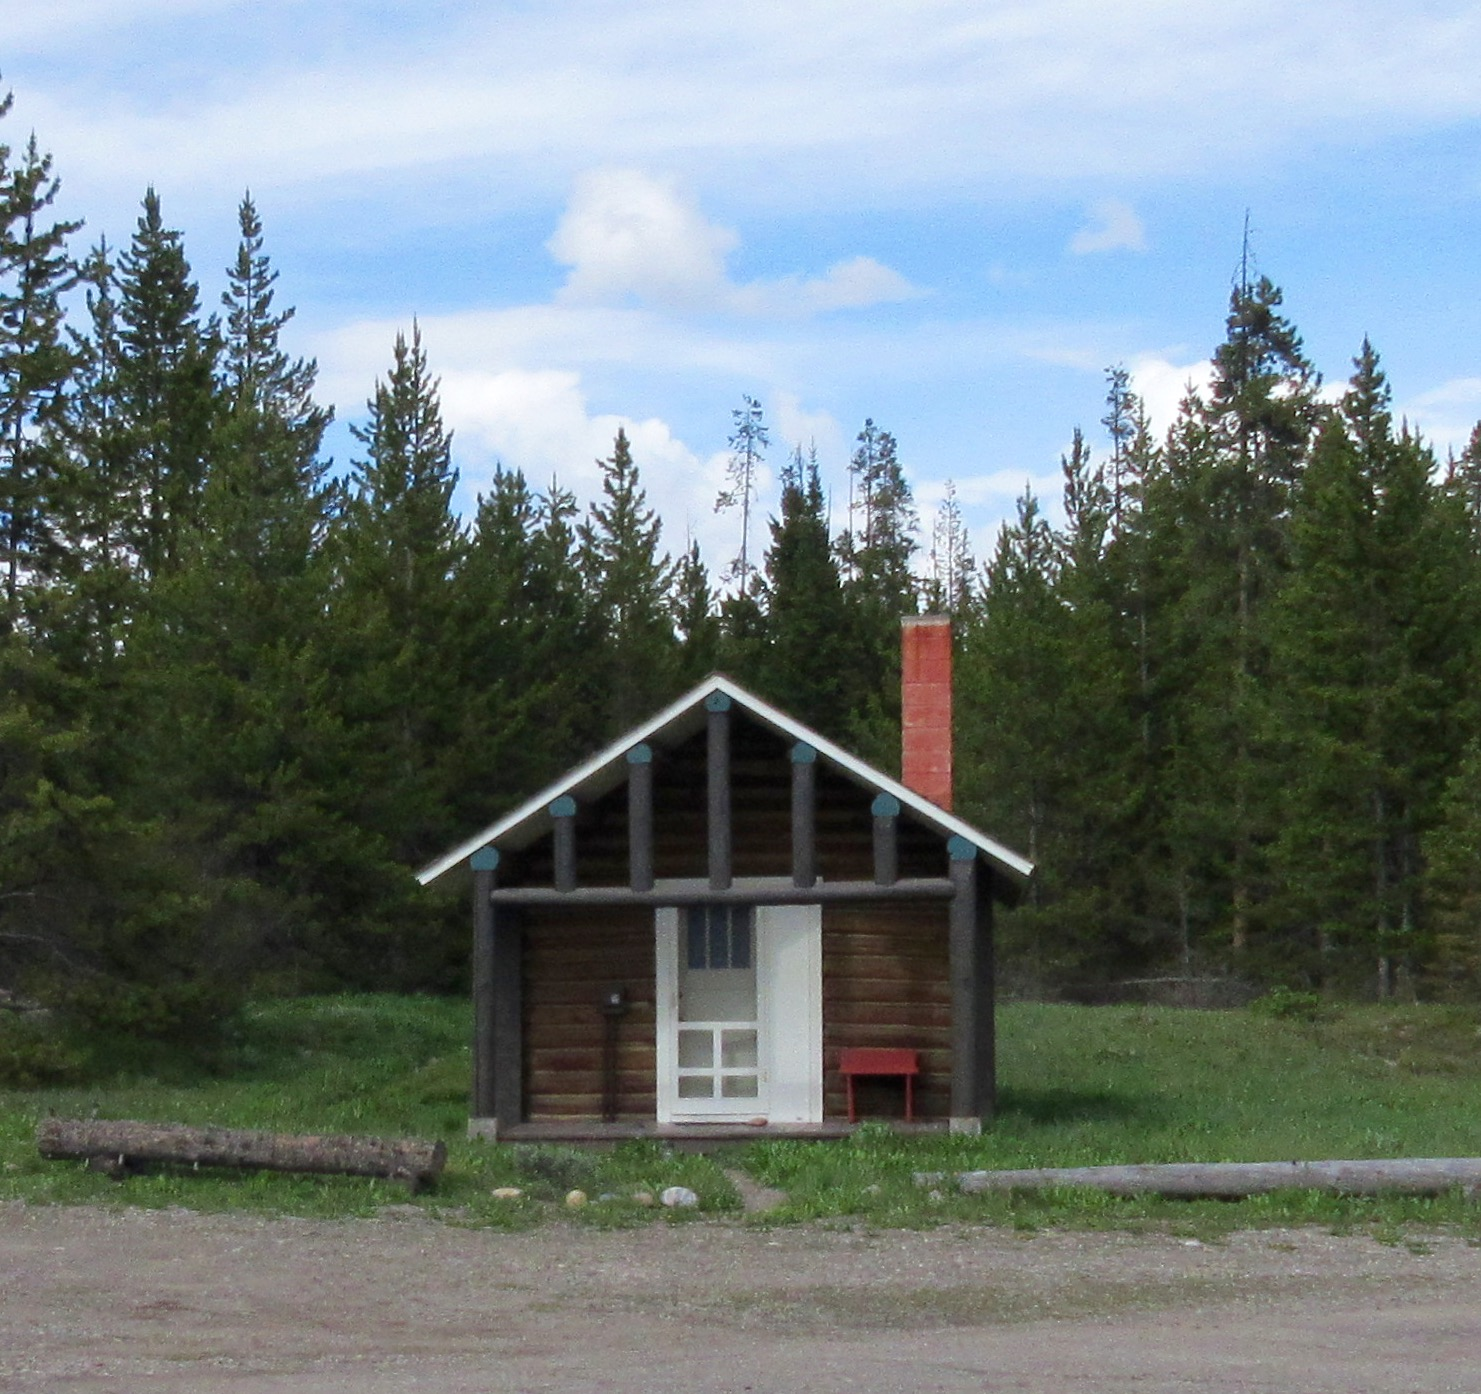 The shop cabin